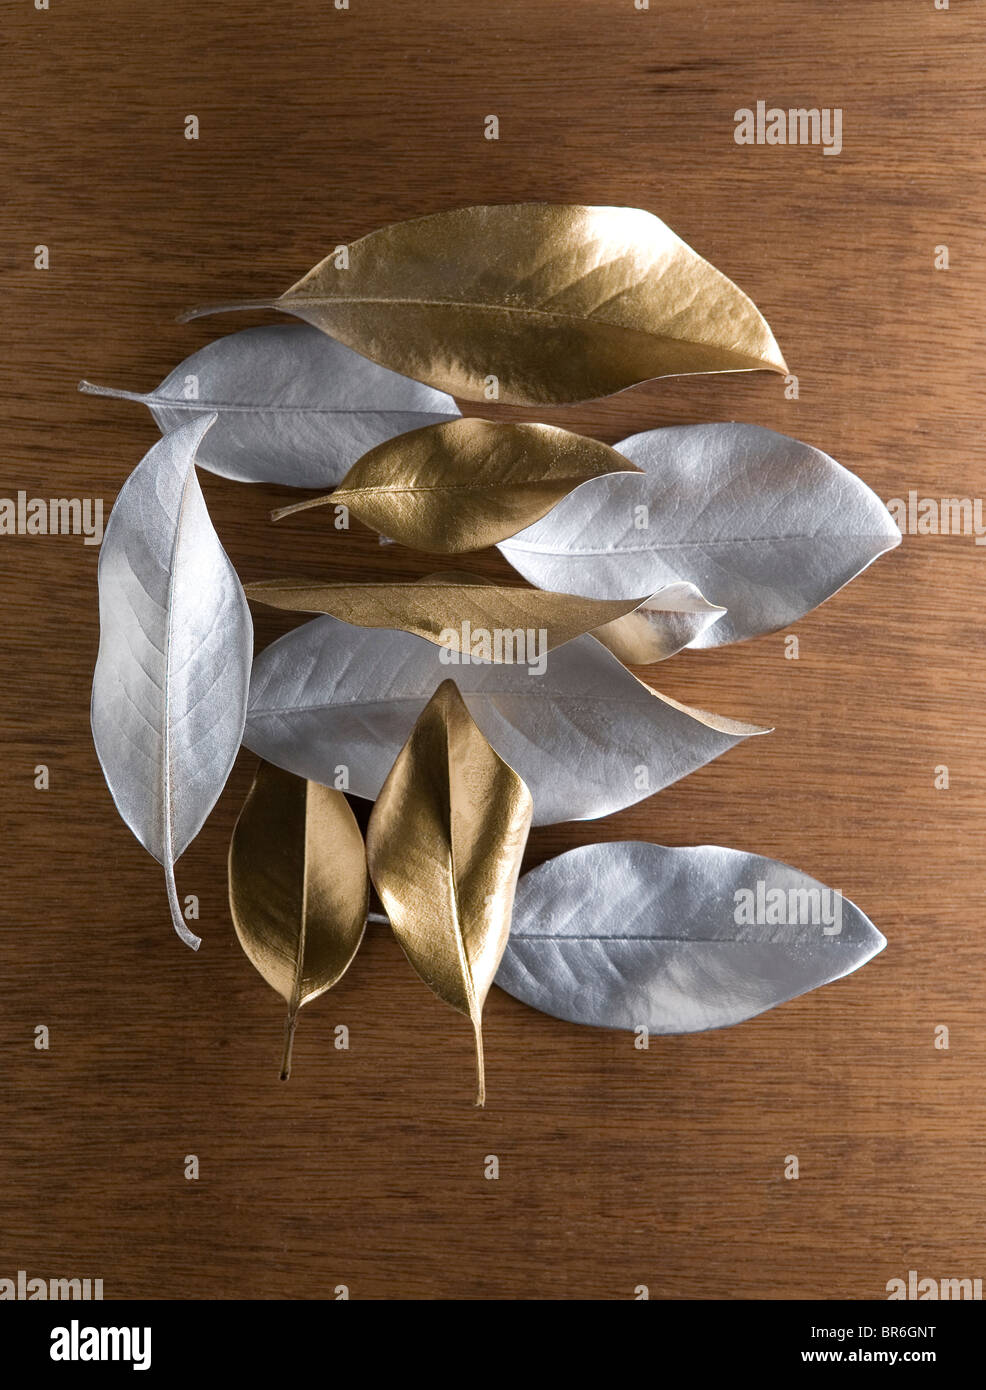 variety of silver and gold leaves - Stock Image